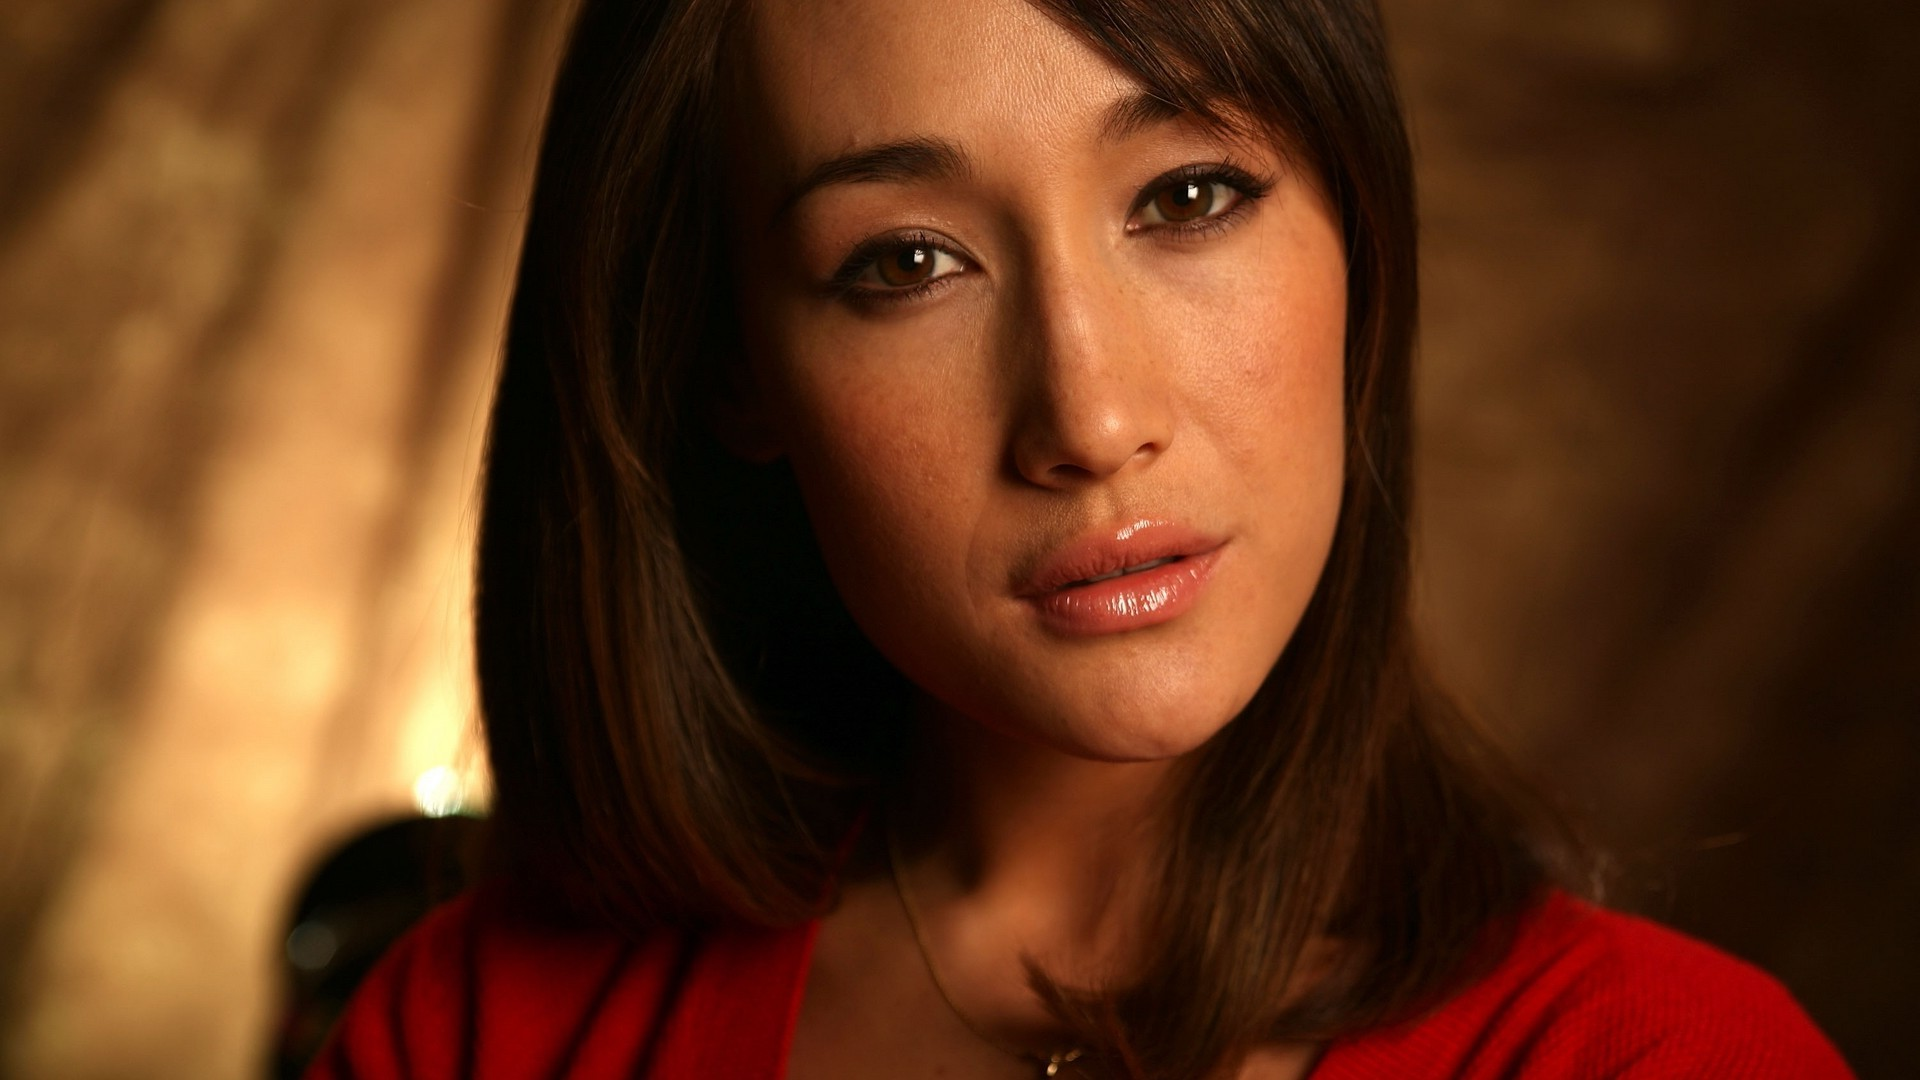 1920x1080 - Maggie Q Wallpapers 20